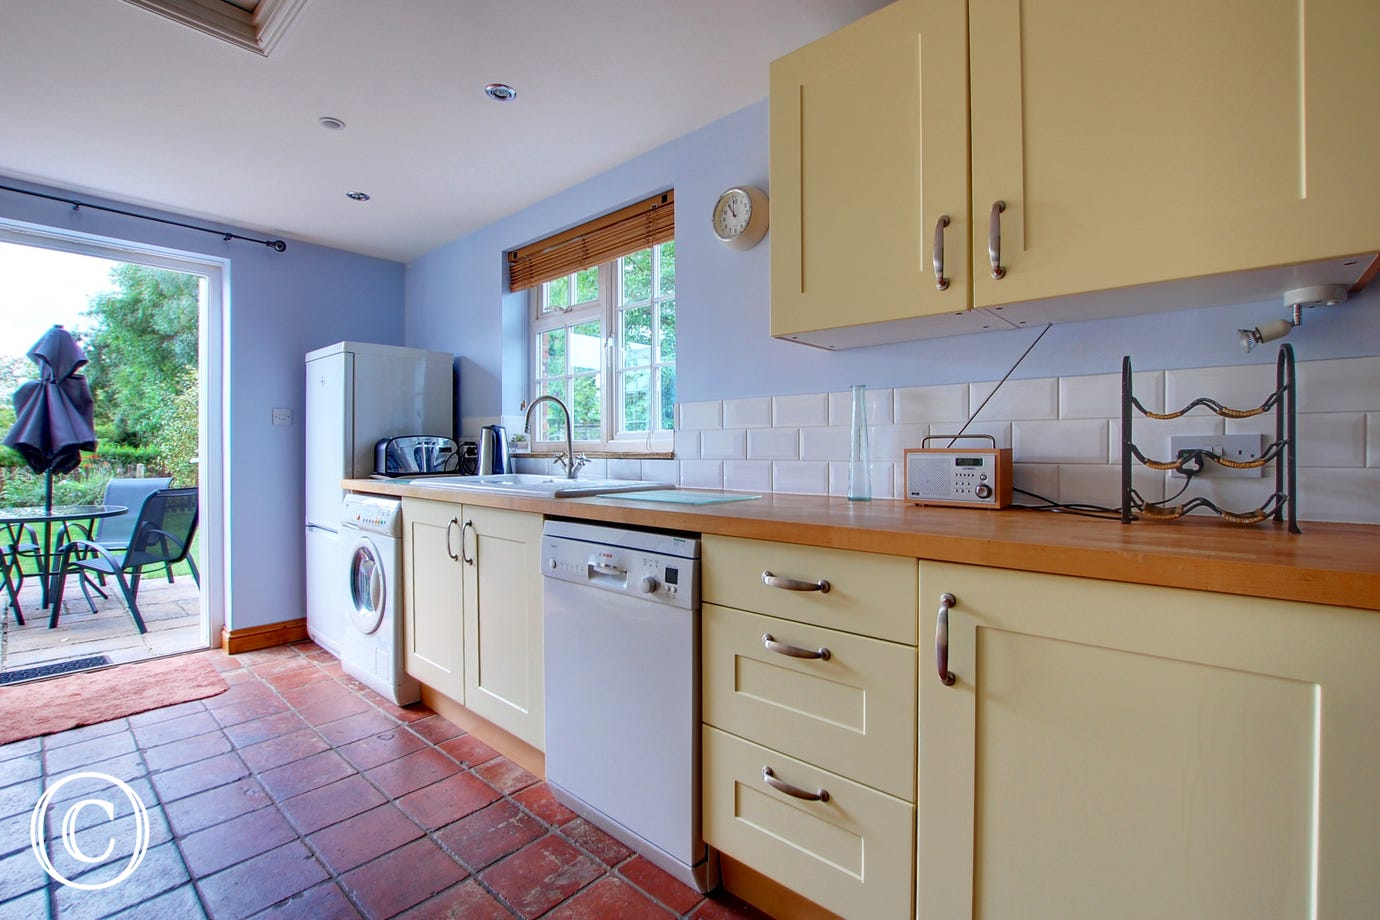 The kitchen is fully fitted with shaker style cream units and a good range of appliances